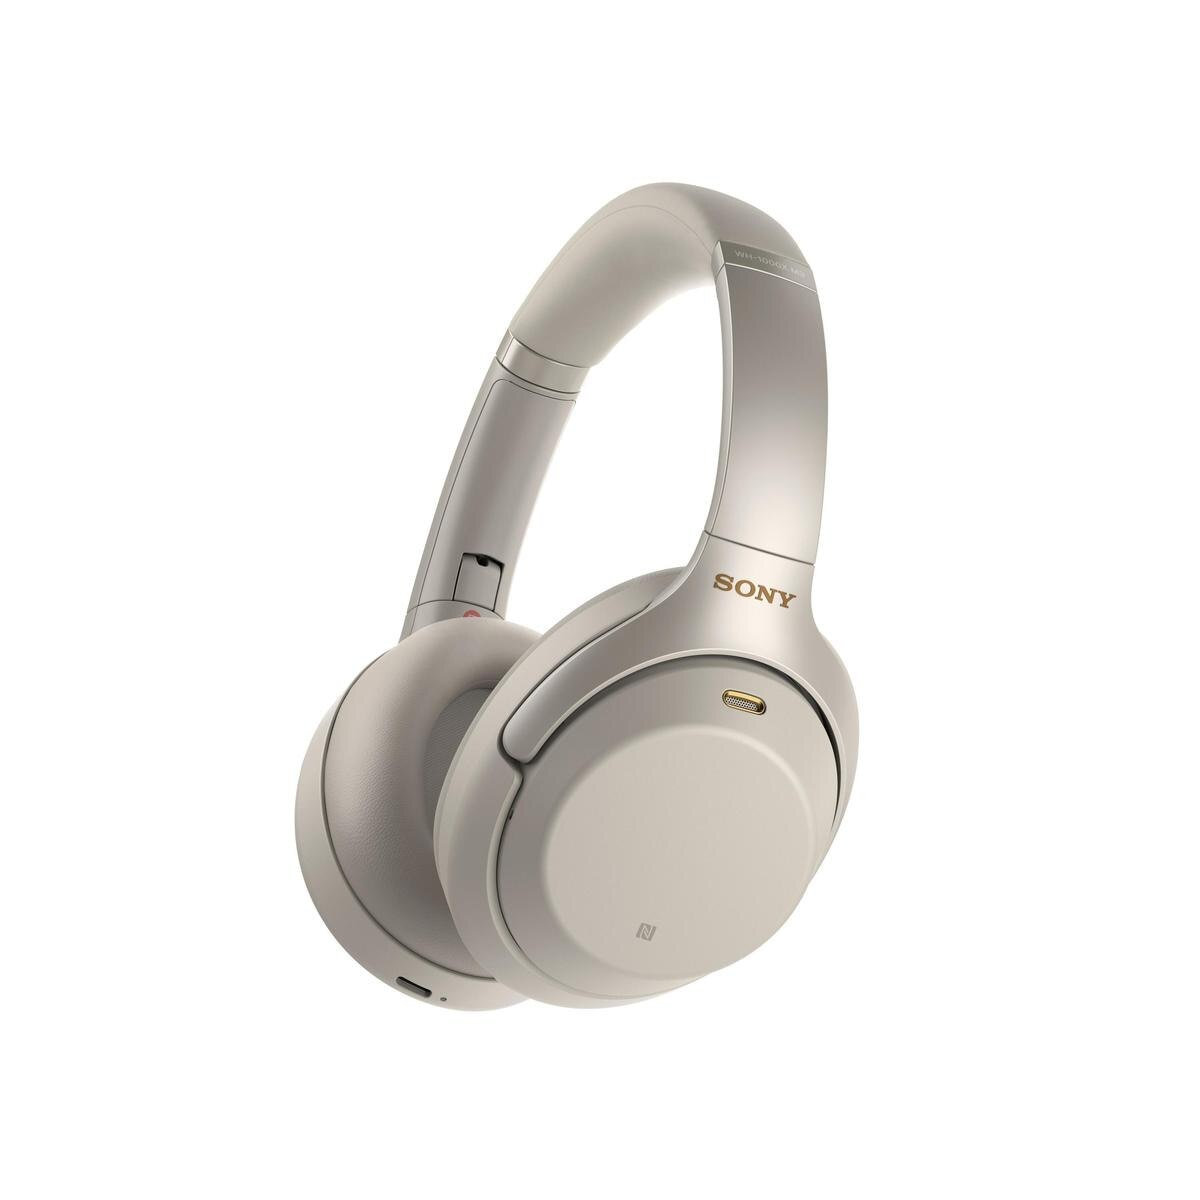 Sony Wh 1000xm3 Premium Bluetooth Wireless Noise Cancelling Headphones Silver